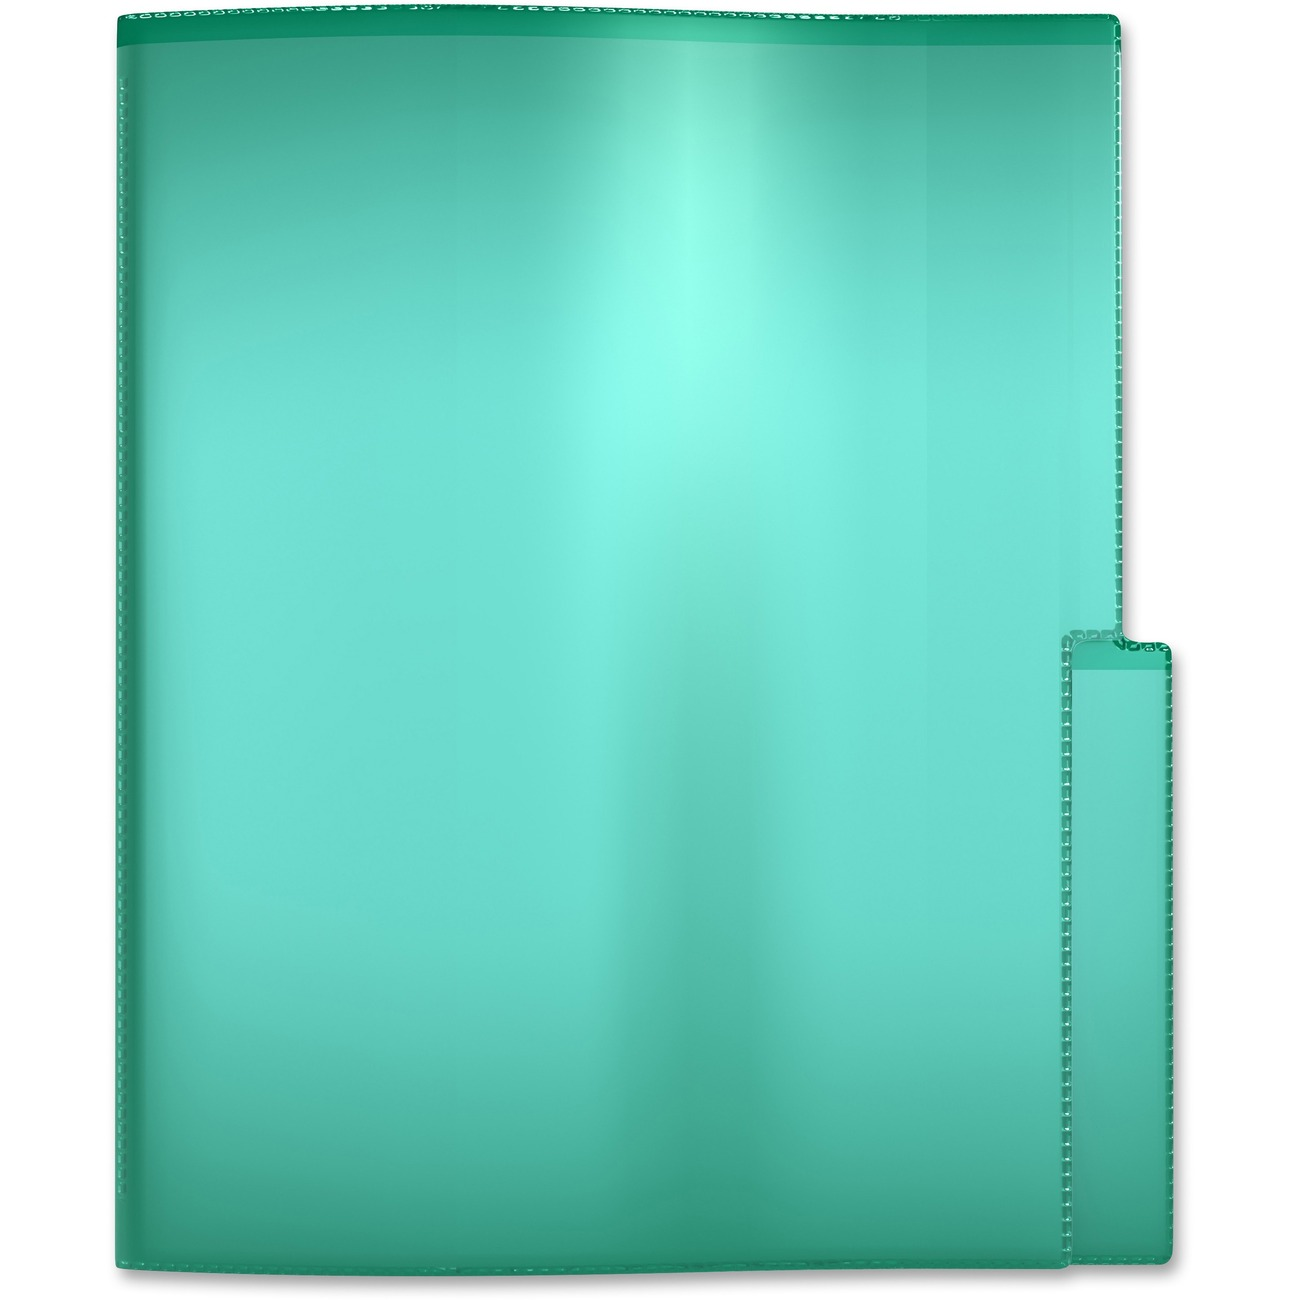 Ocean Stationery And Office Supplies :: Office Supplies